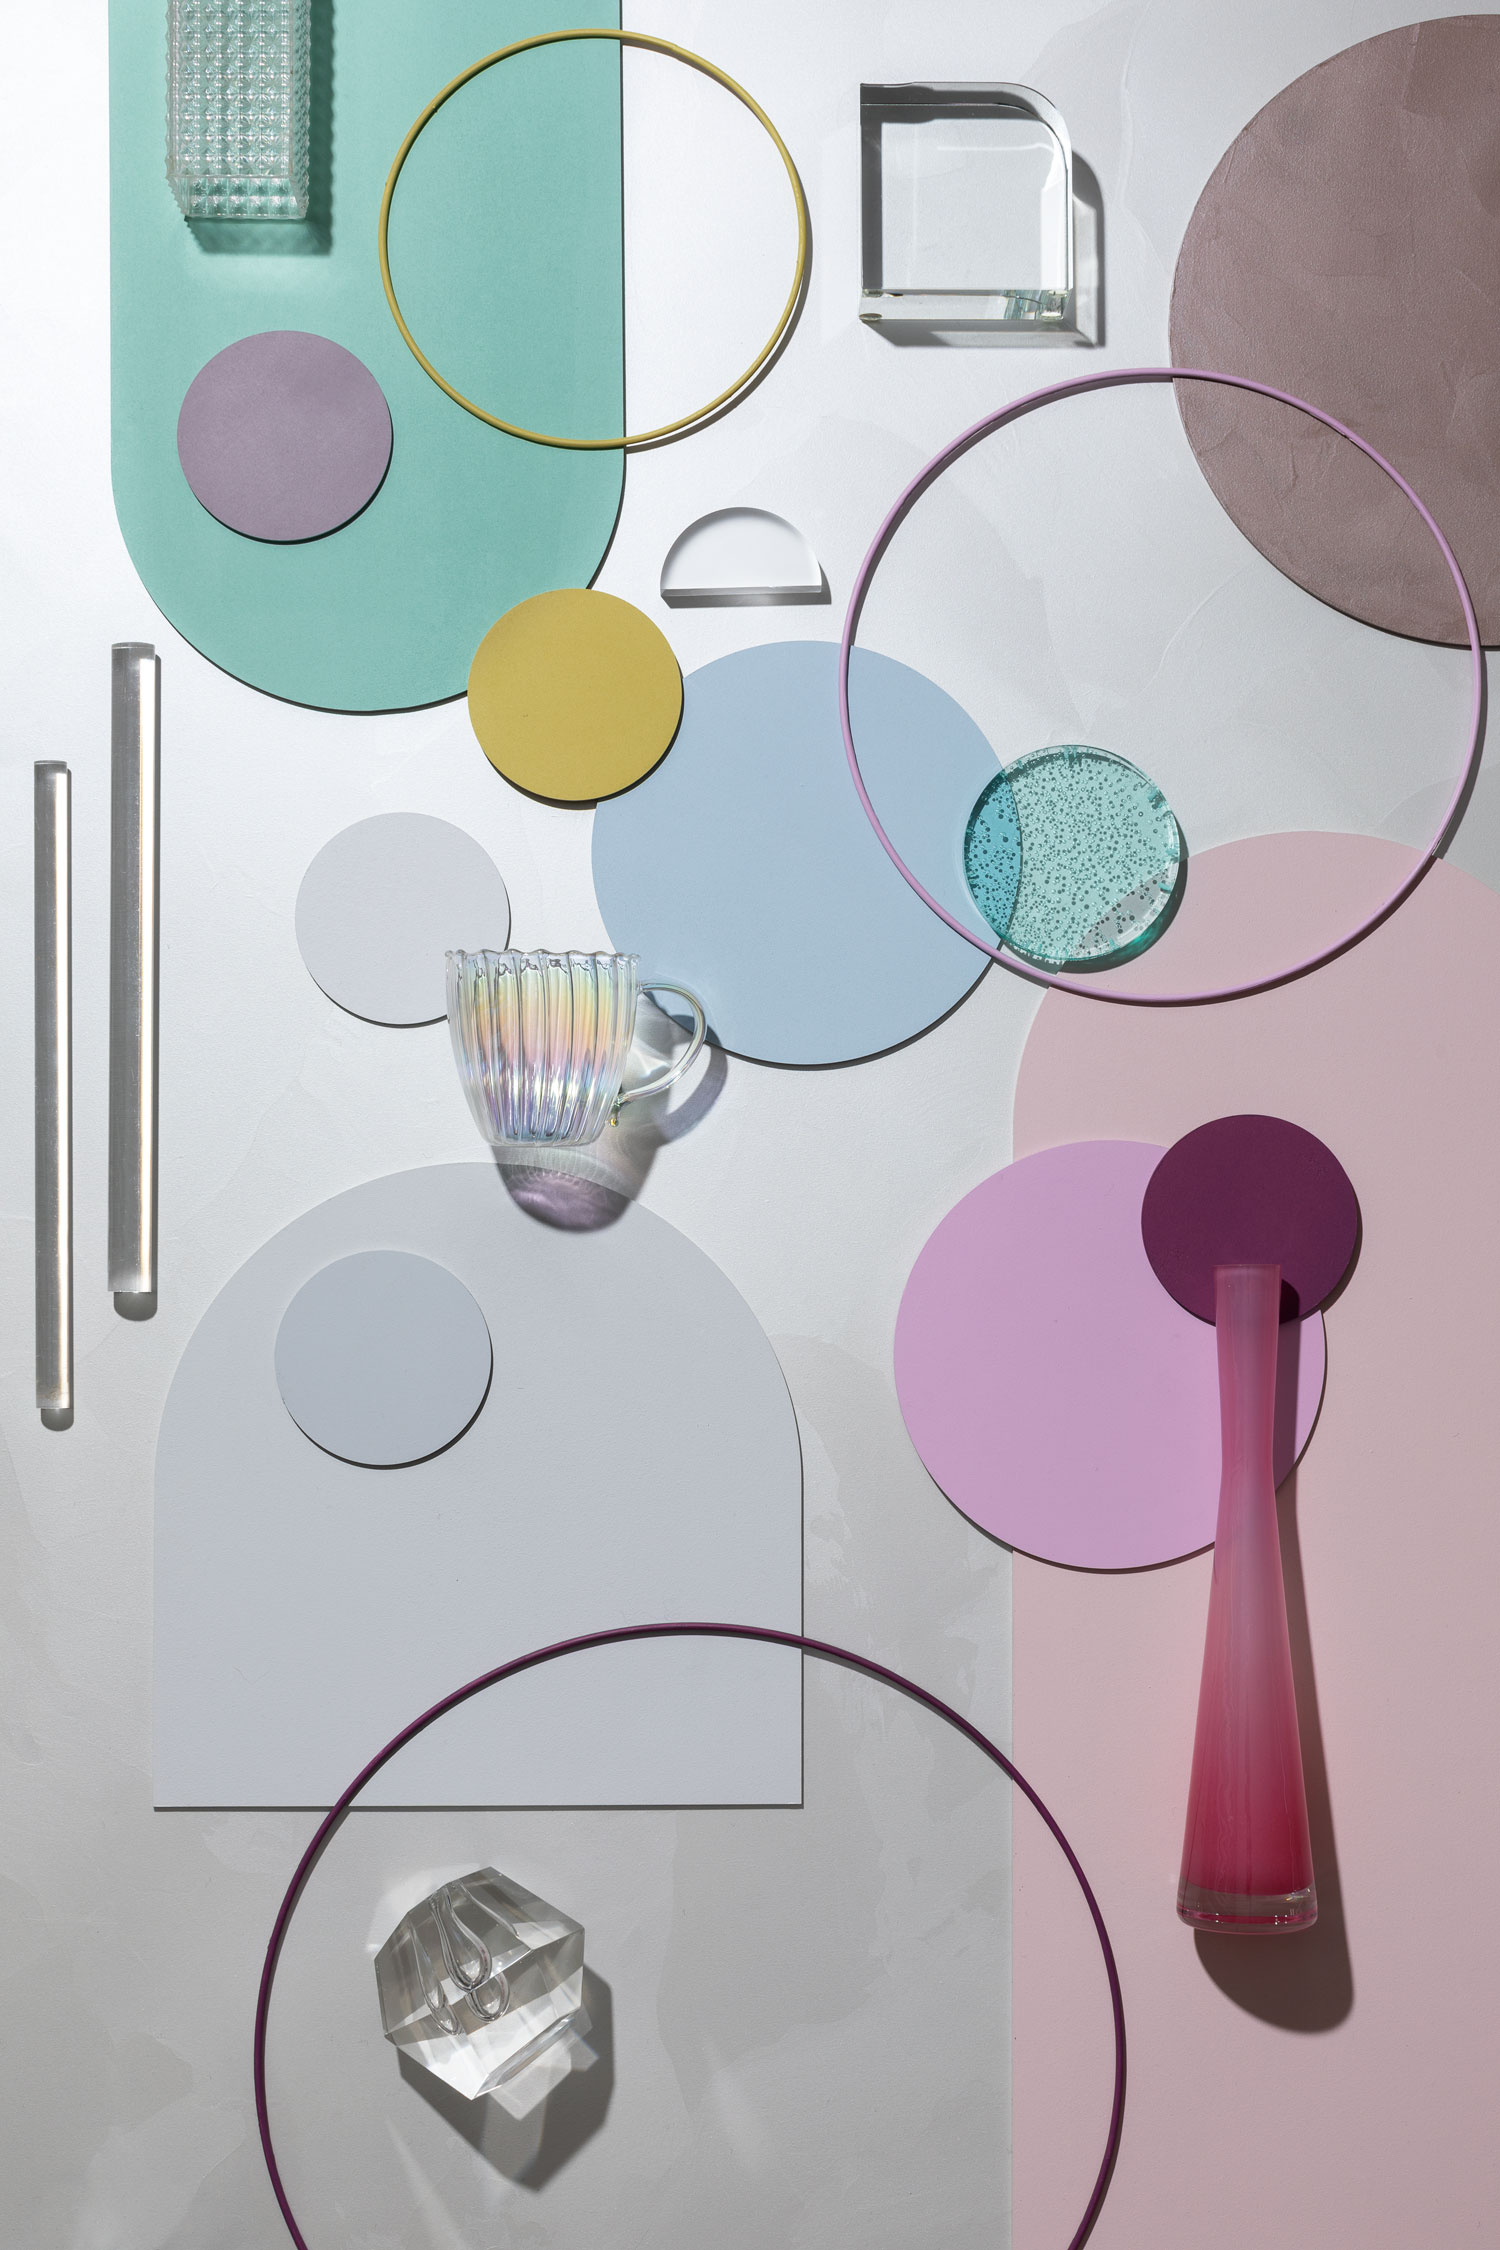 Game Changer Awakening Haymes Paint Vol15 Colour Library Photo Martina Gemmola Yellowtrace 11